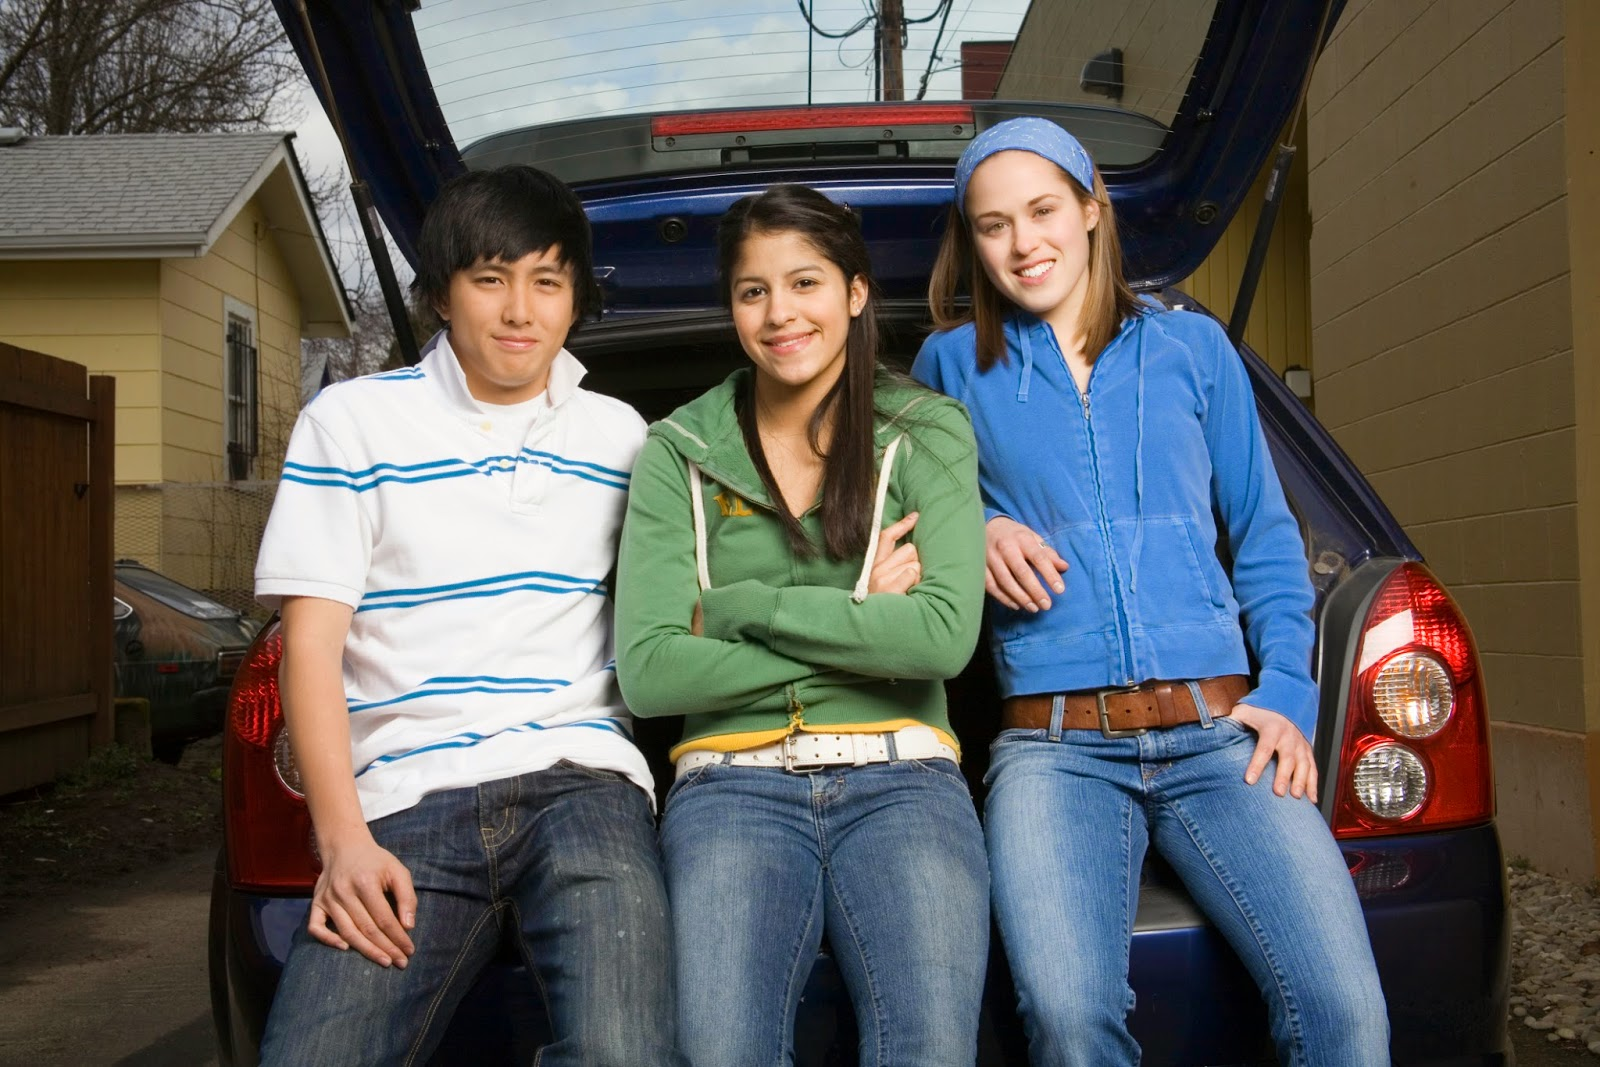 teens sitting on bumper of car